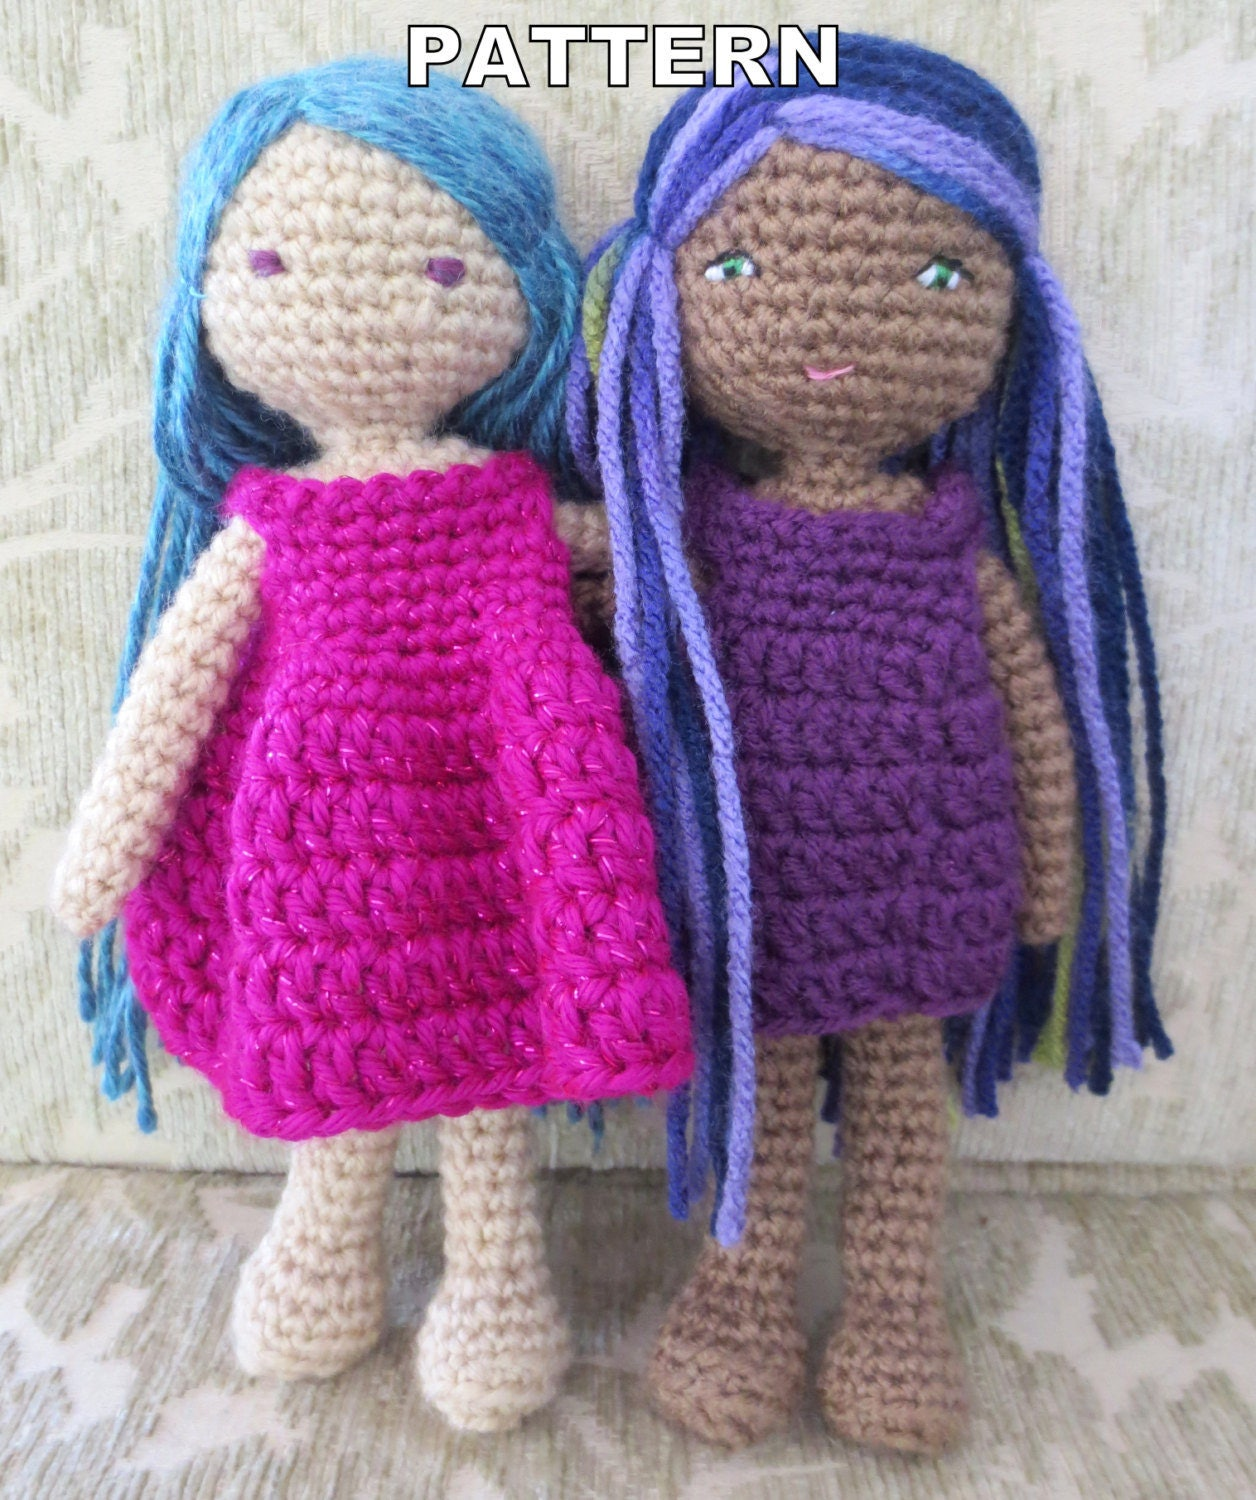 Crochet Doll Pattern Amigurumi Doll Pattern Toy Crochet | Etsy | 1500x1256